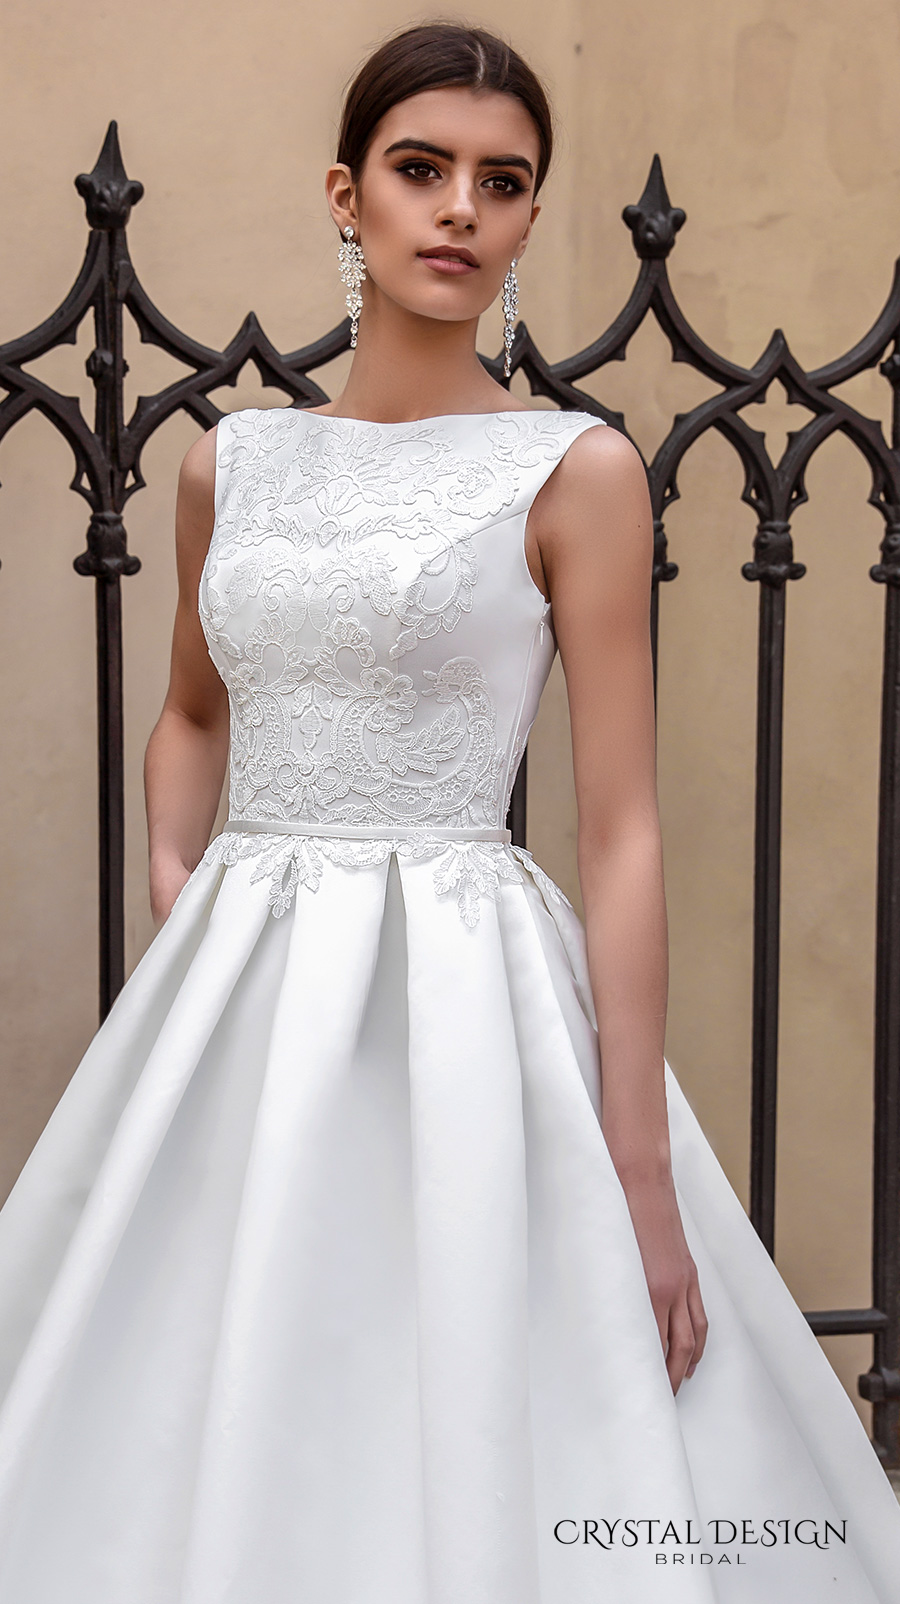 boat neckline boat neck wedding dress bateau neck beaded short sleeve embroidered ivory wedding dress